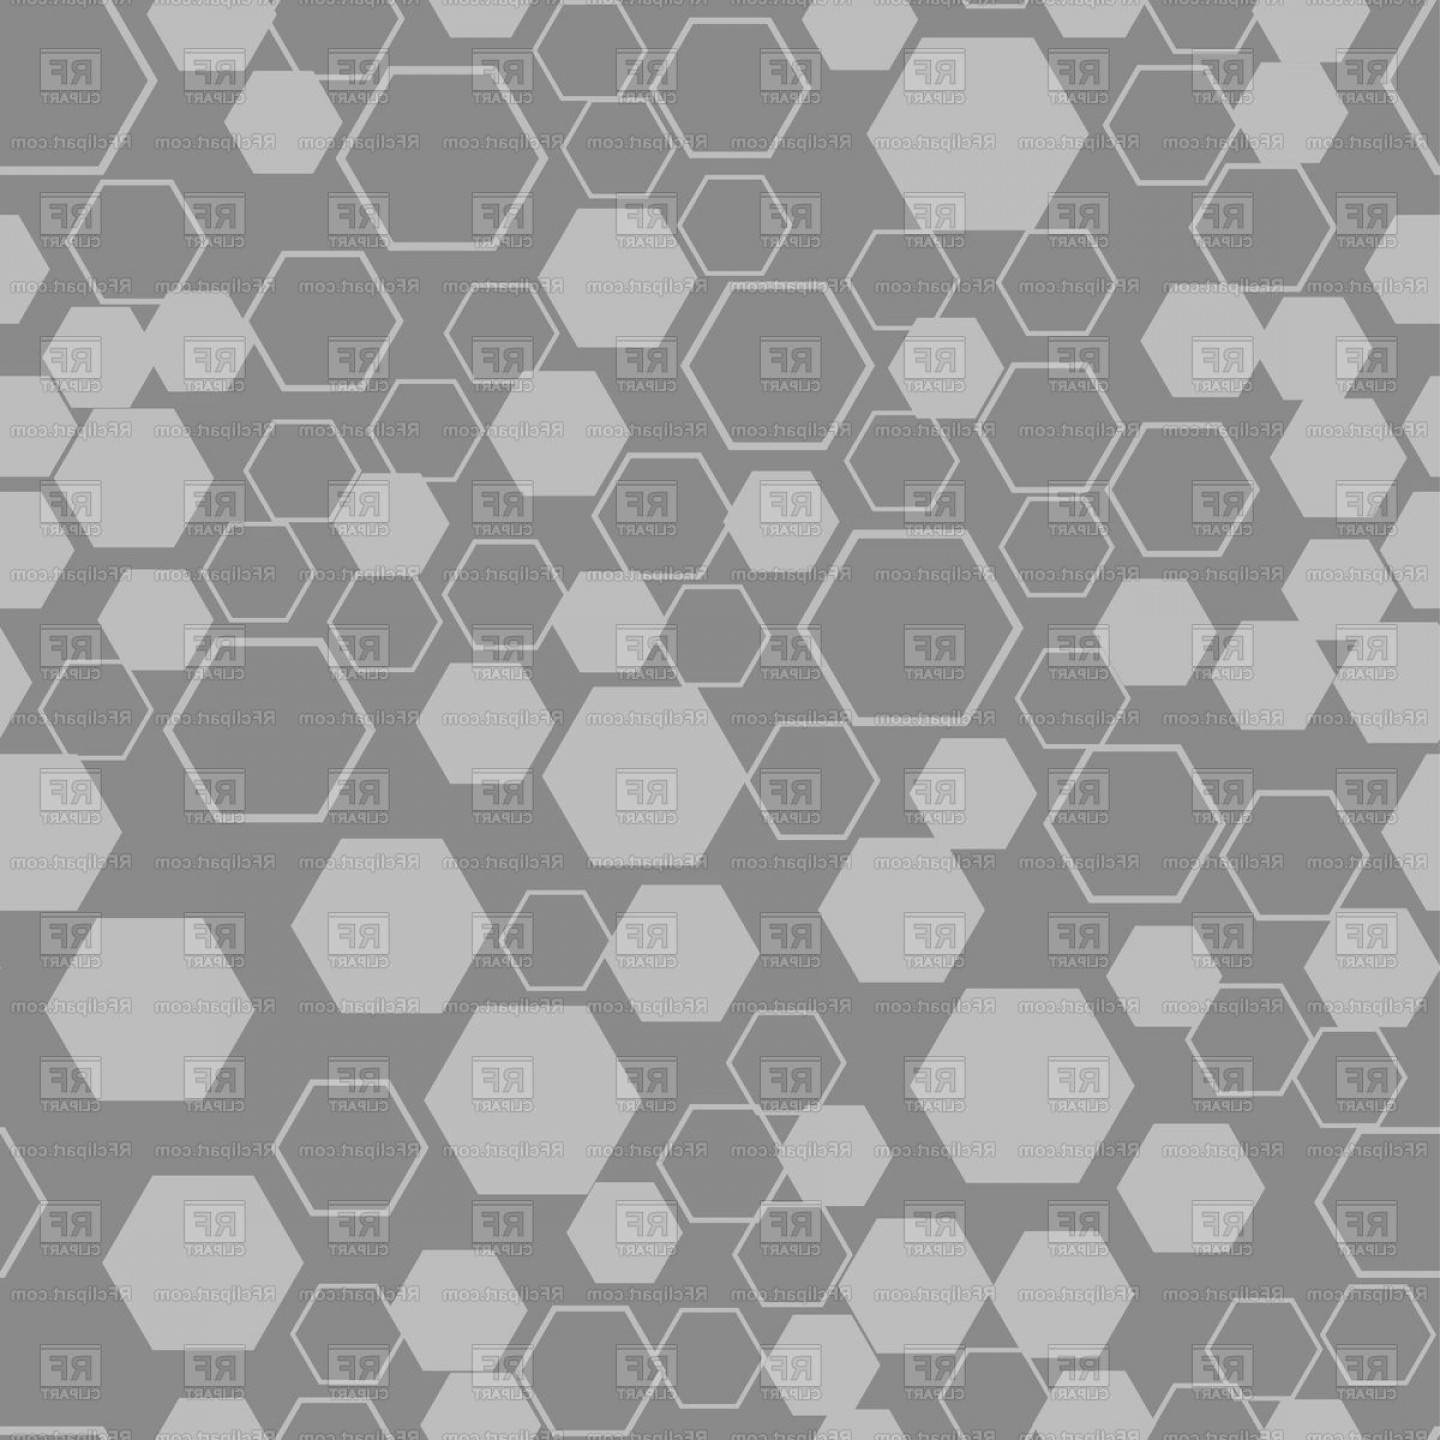 Honeycomb Background Pattern Vector: Honeycomb Background Seamless Texture Vector Clipart